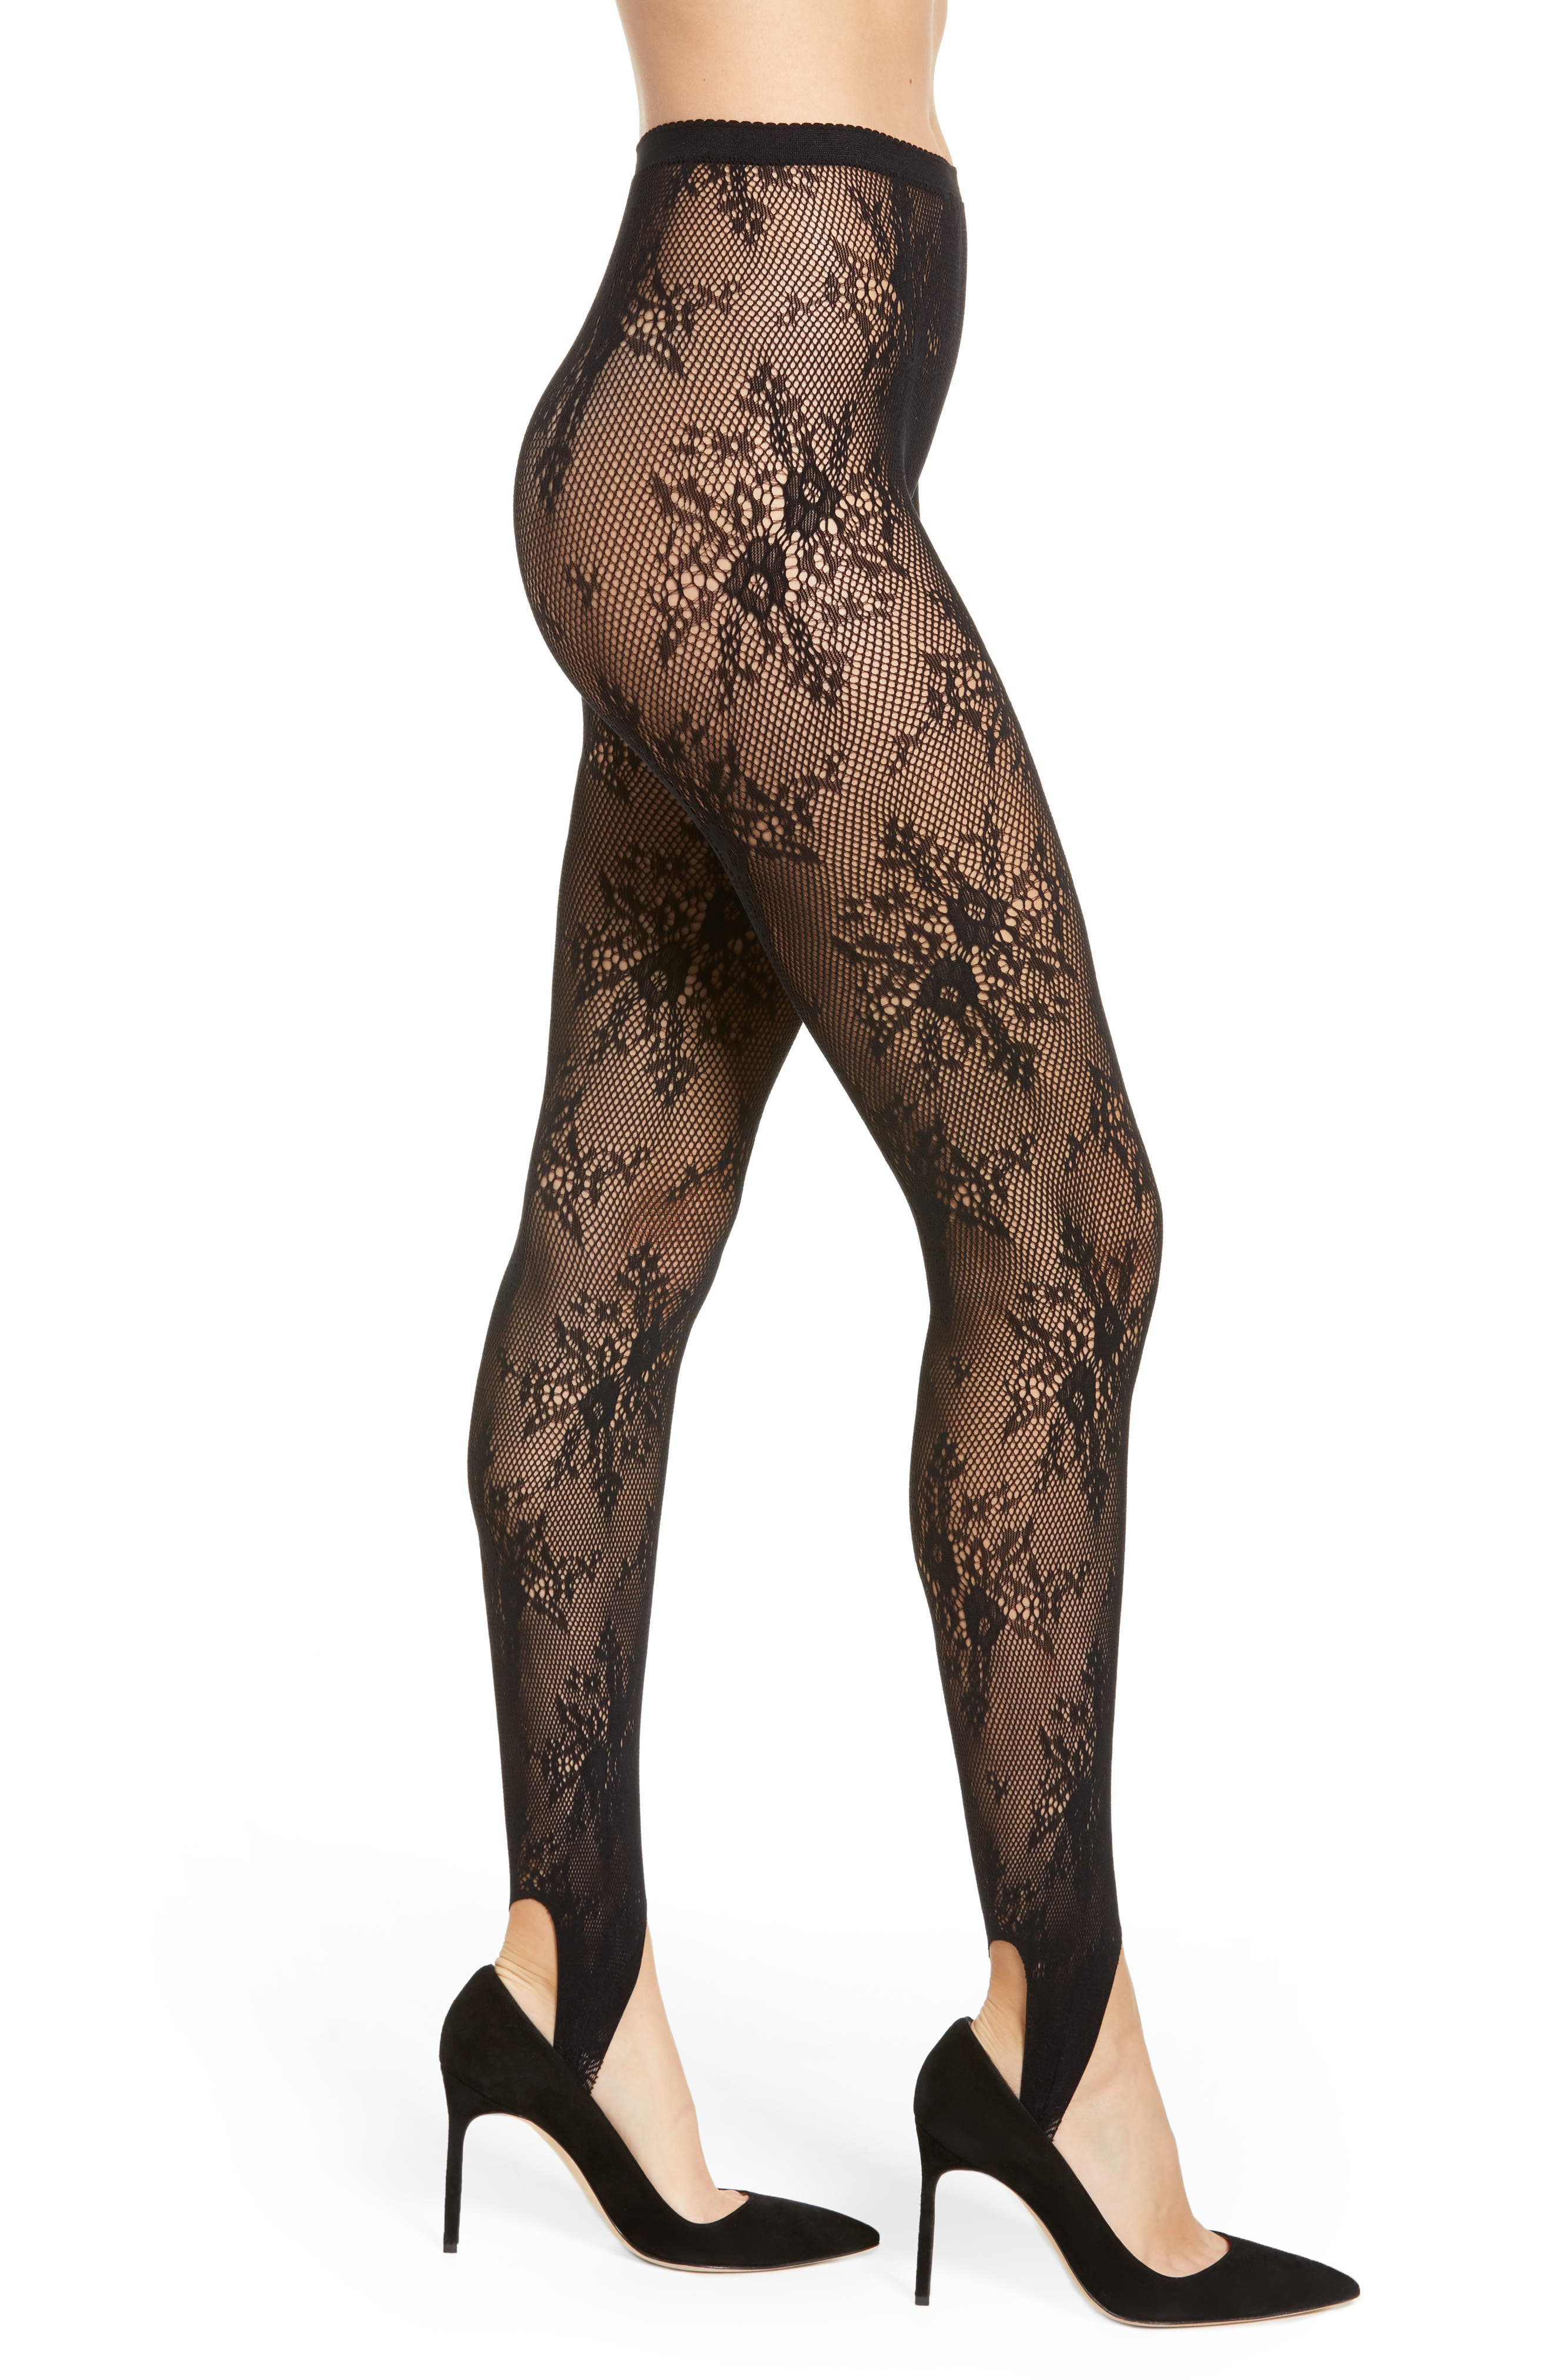 NORDSTROM,                             Floral Fishnet Stirrup Tights,                             Main thumbnail 1, color,                             001